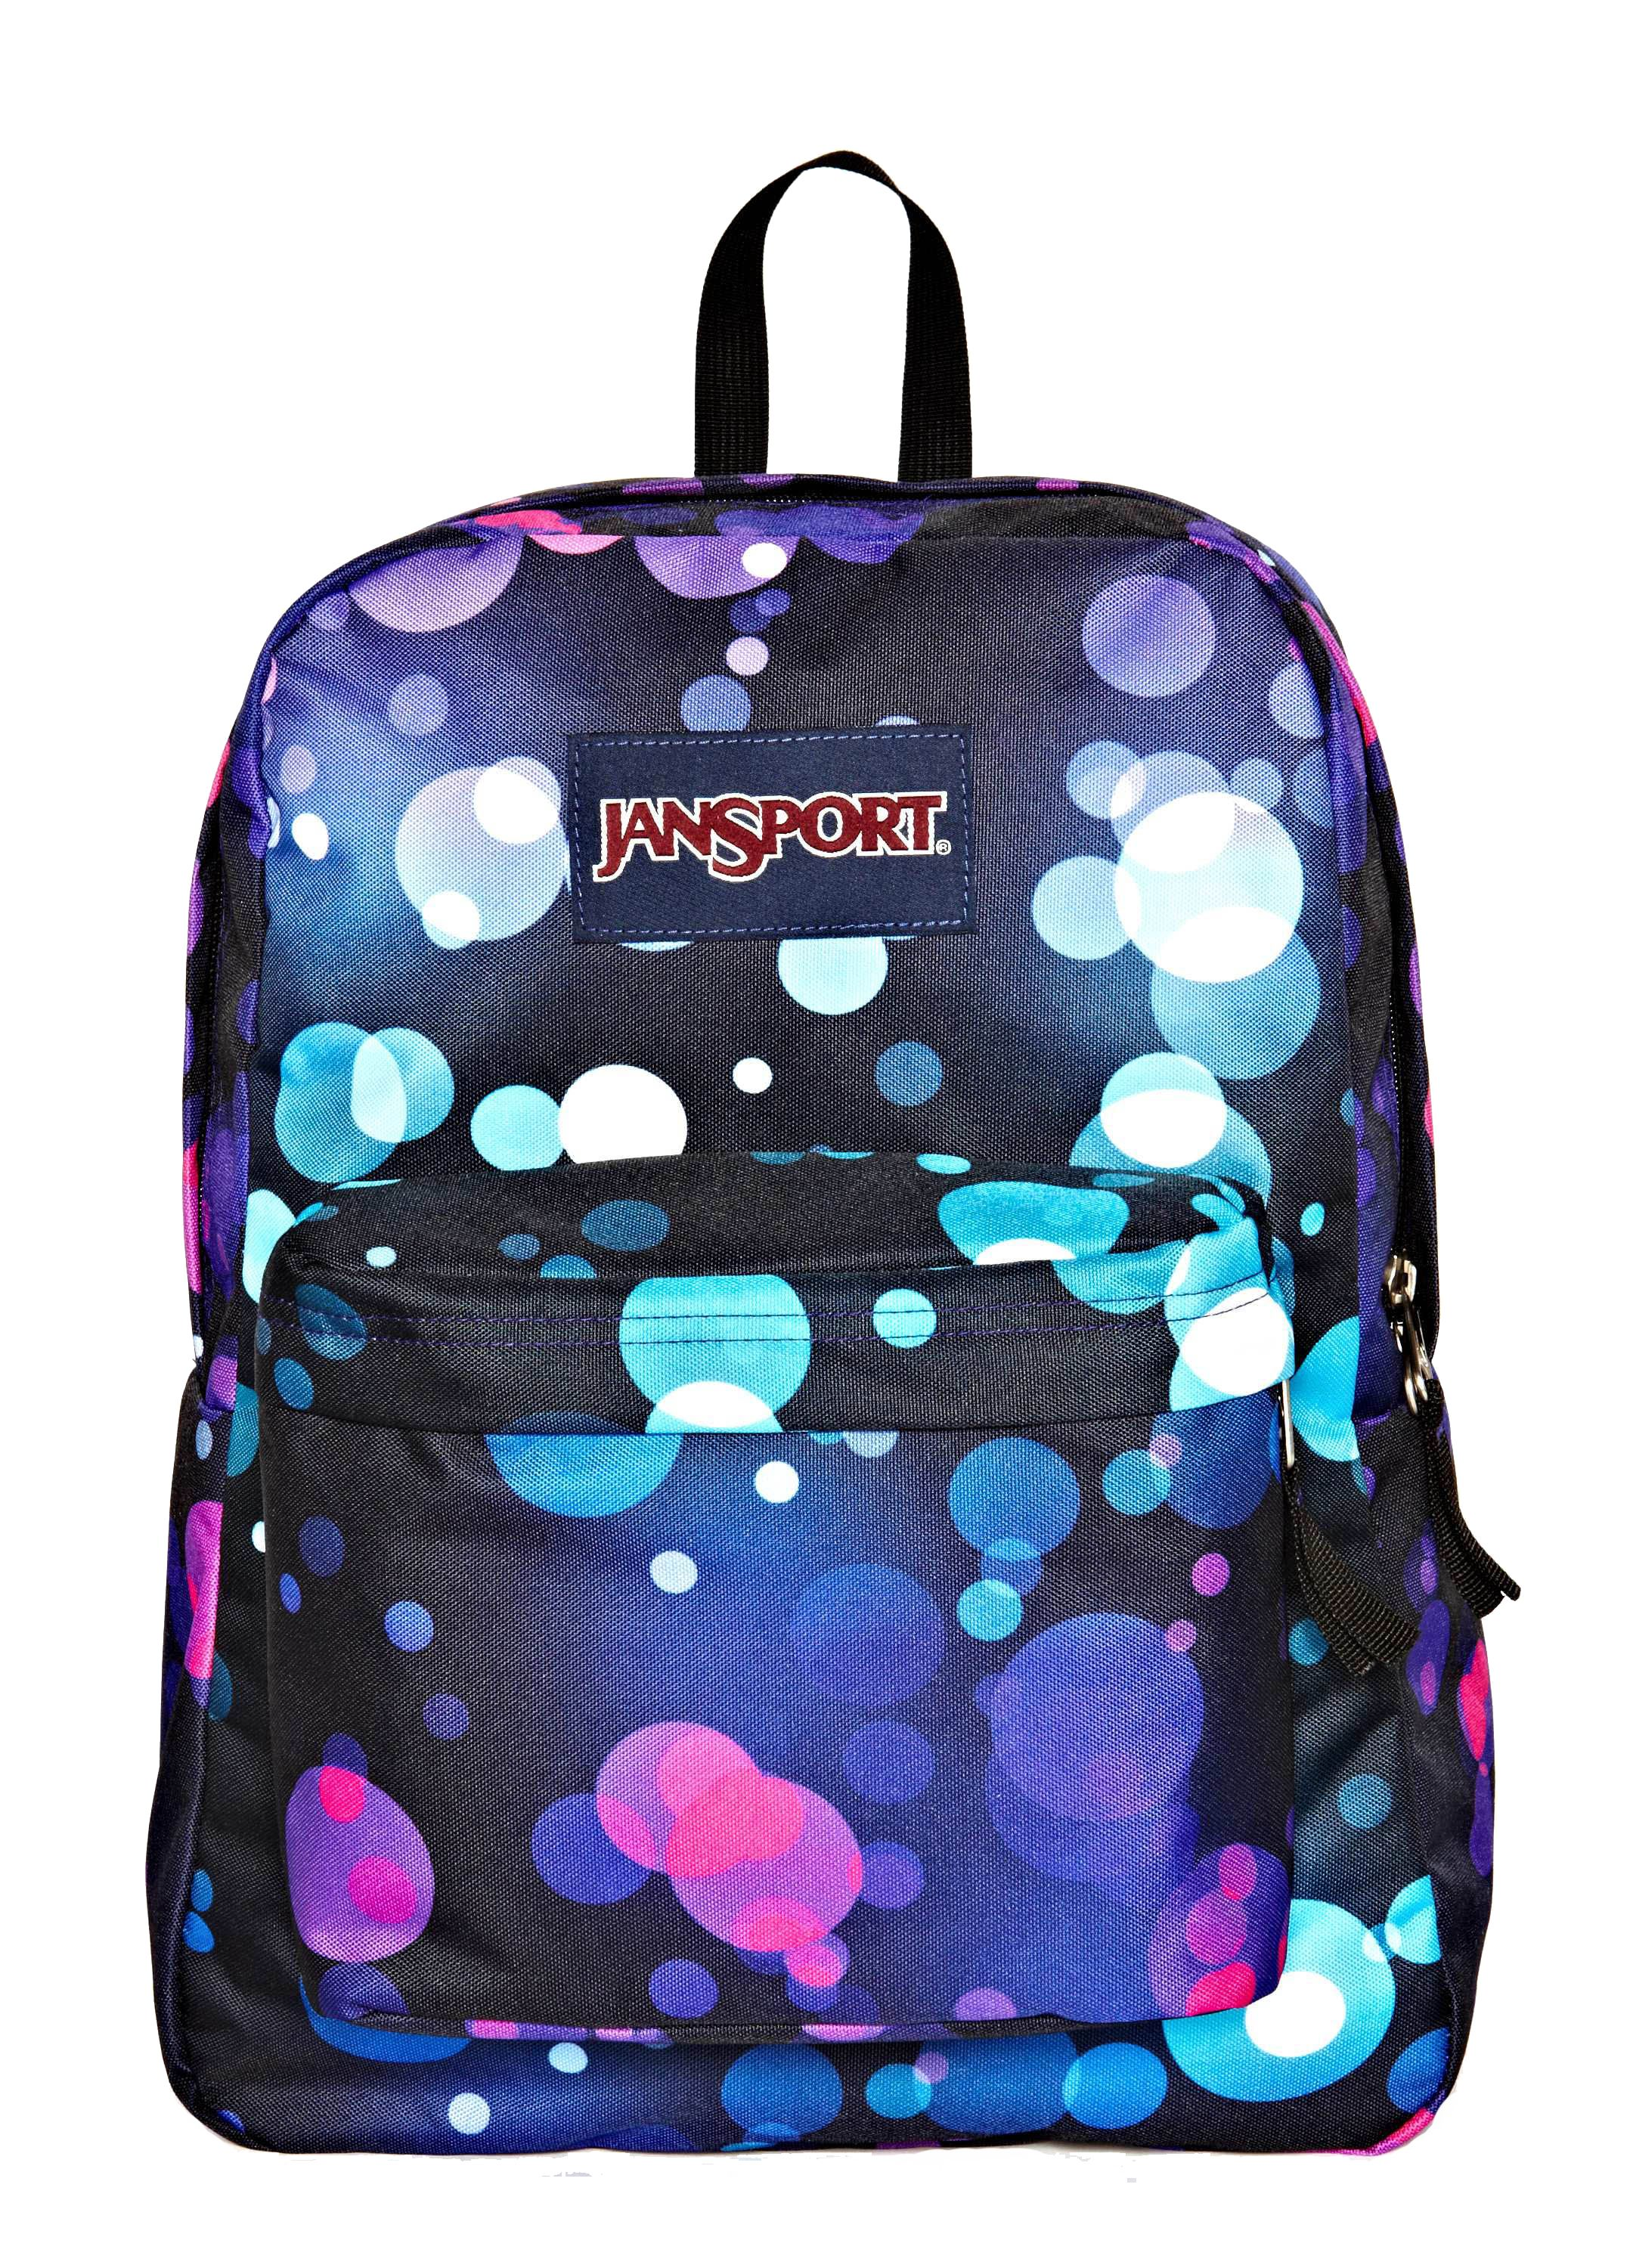 21 cool backpacks for teen girls school supplies backpacks